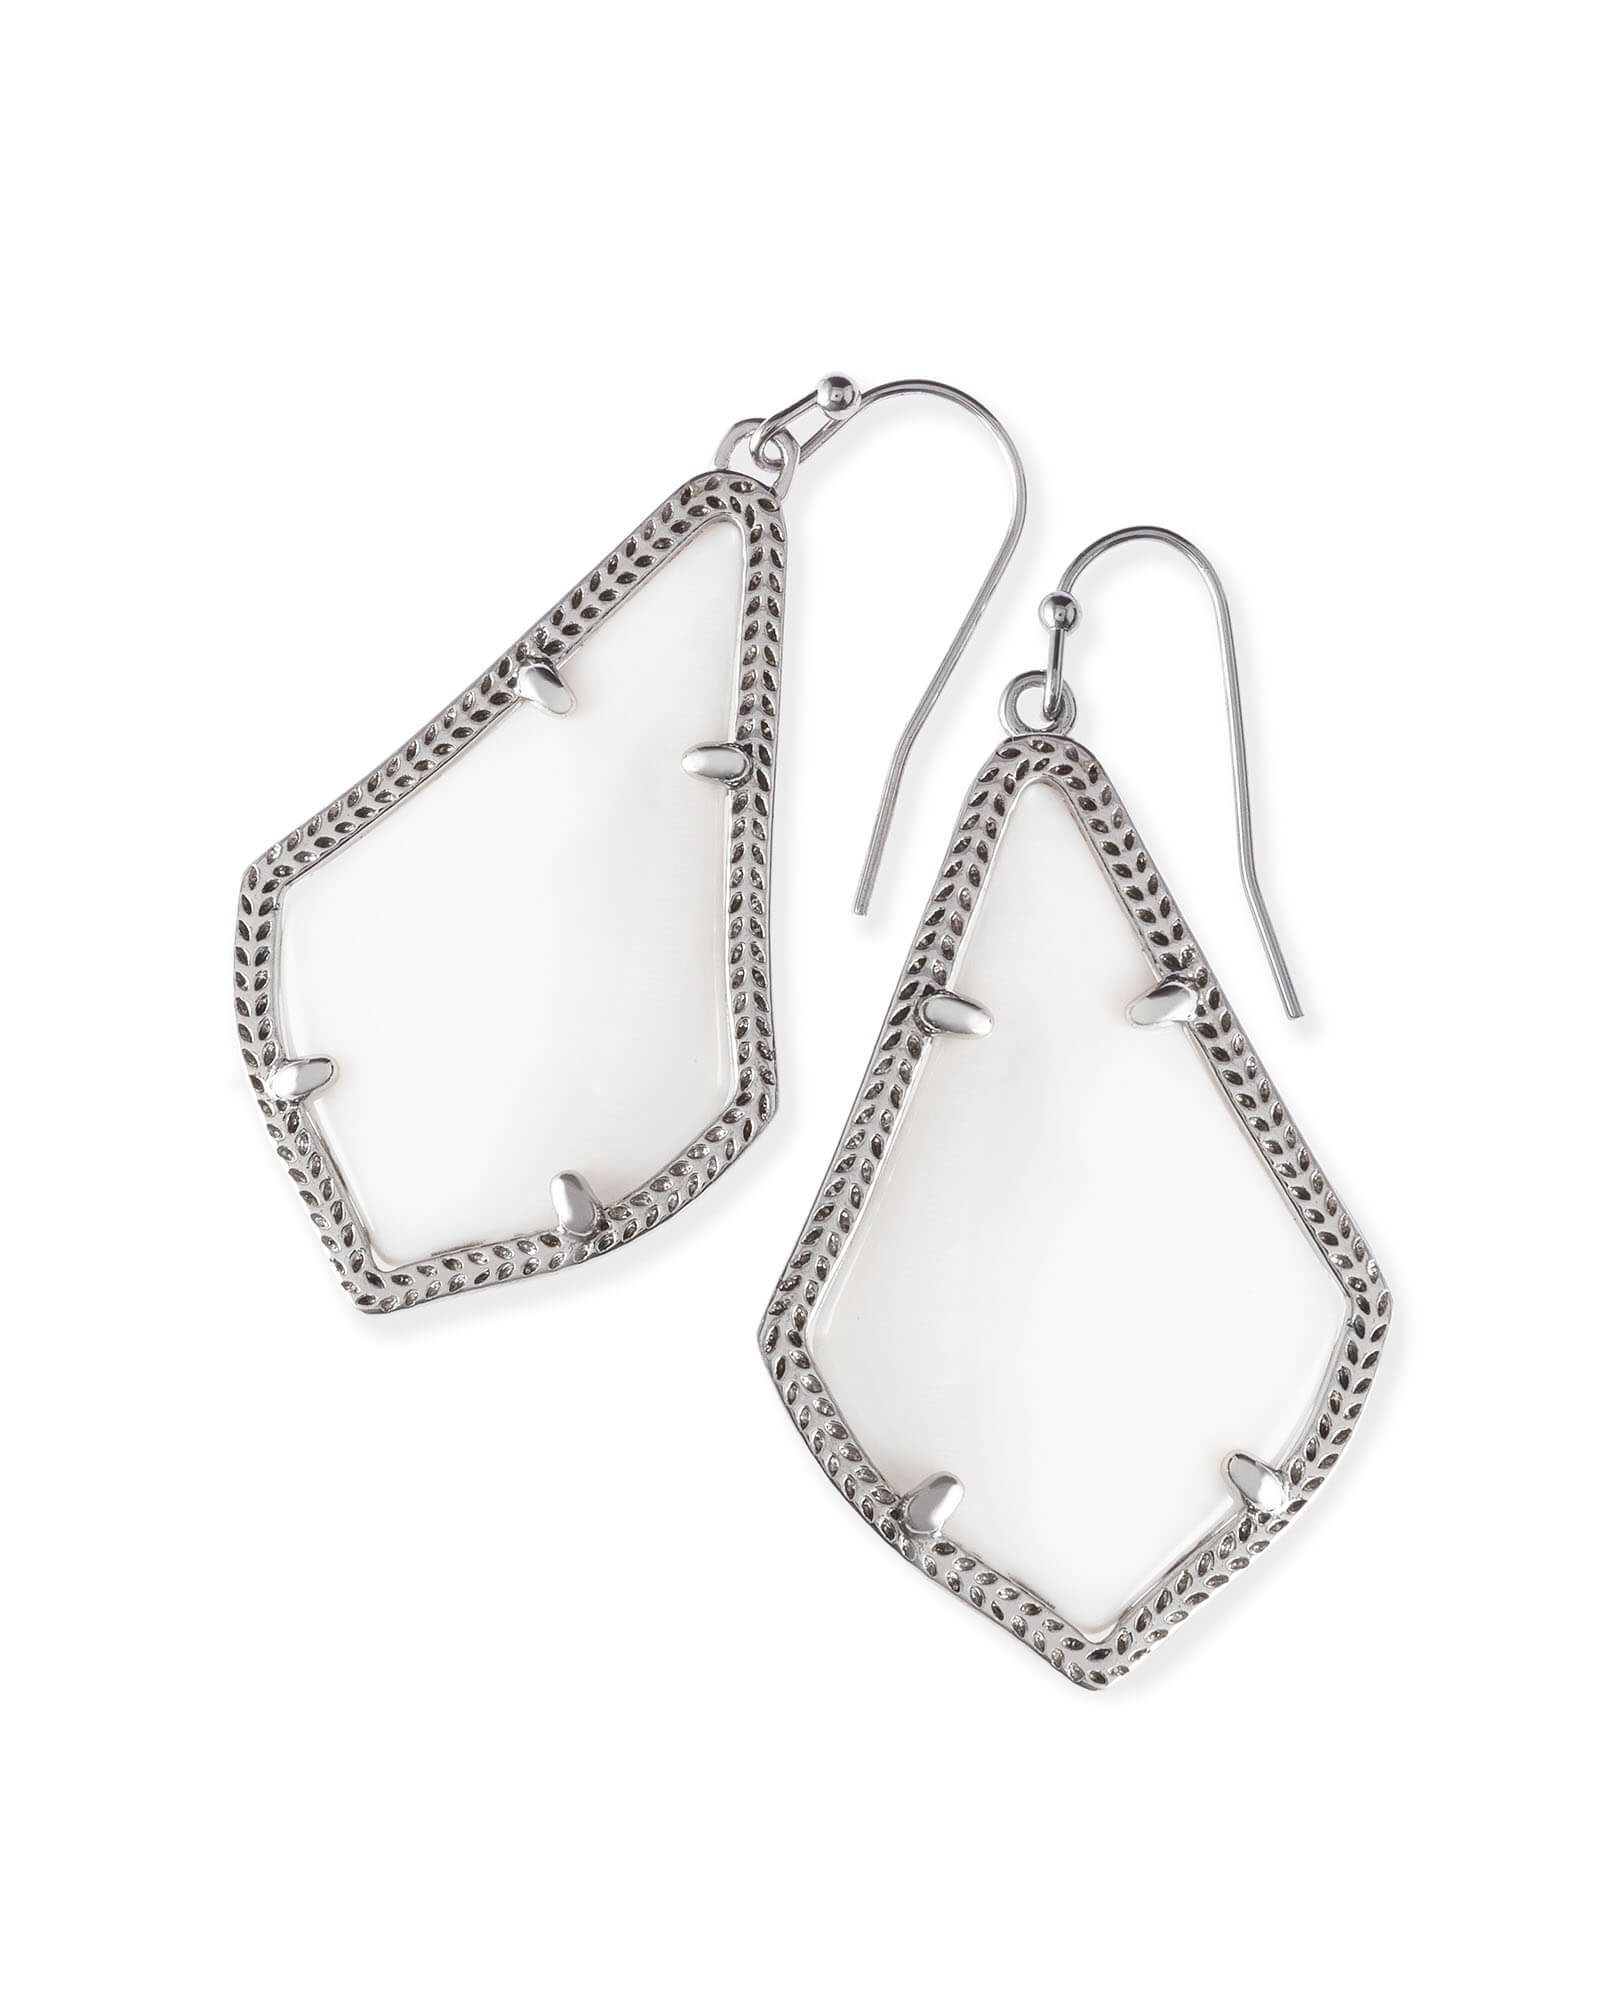 Alex Silver Drop Earrings in White Mother-of-Pearl